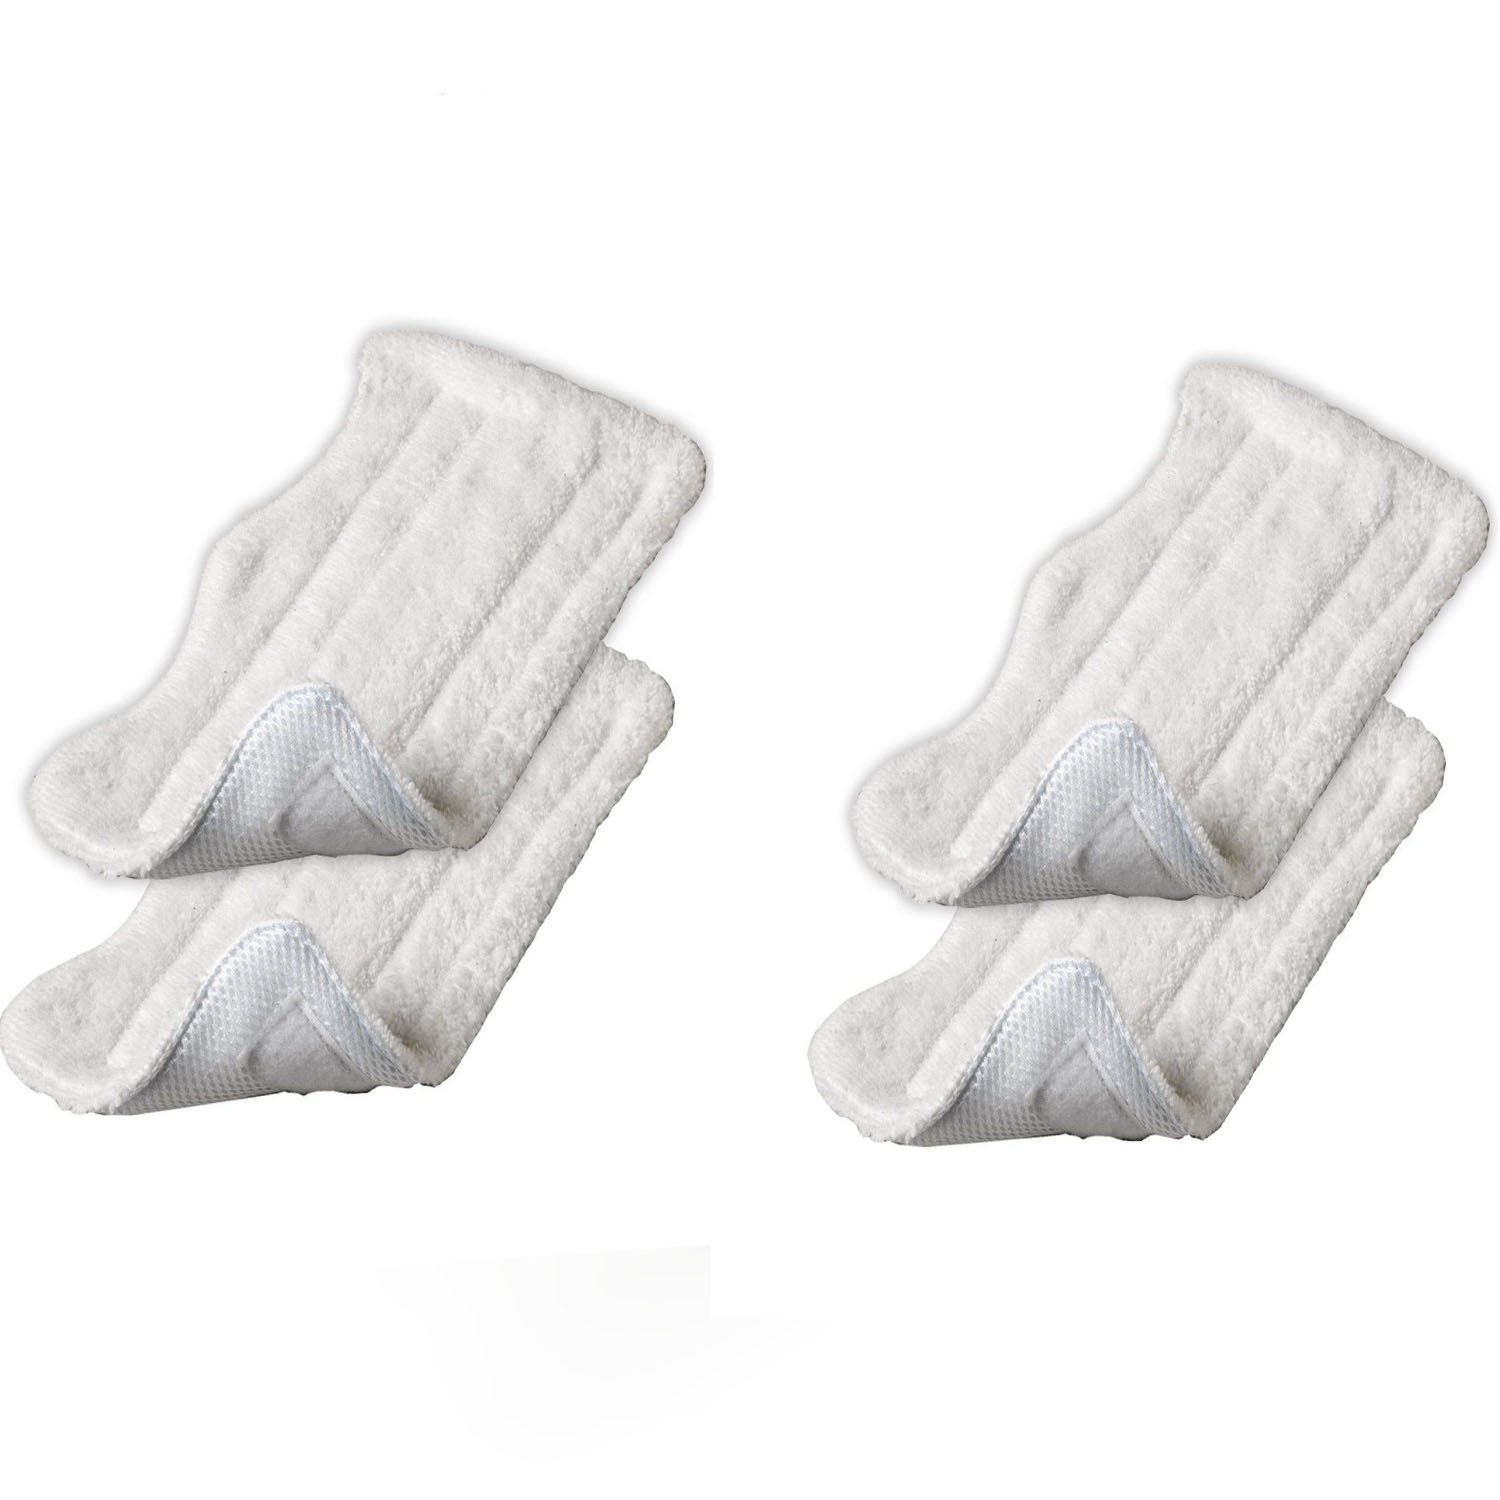 4 Pack Steam Mop Pads for Shark Steam and Spray Mop XT3010, S3111, S1001, S3101, SP100K, S3250, S3251, S3202, SE200, SP100Q